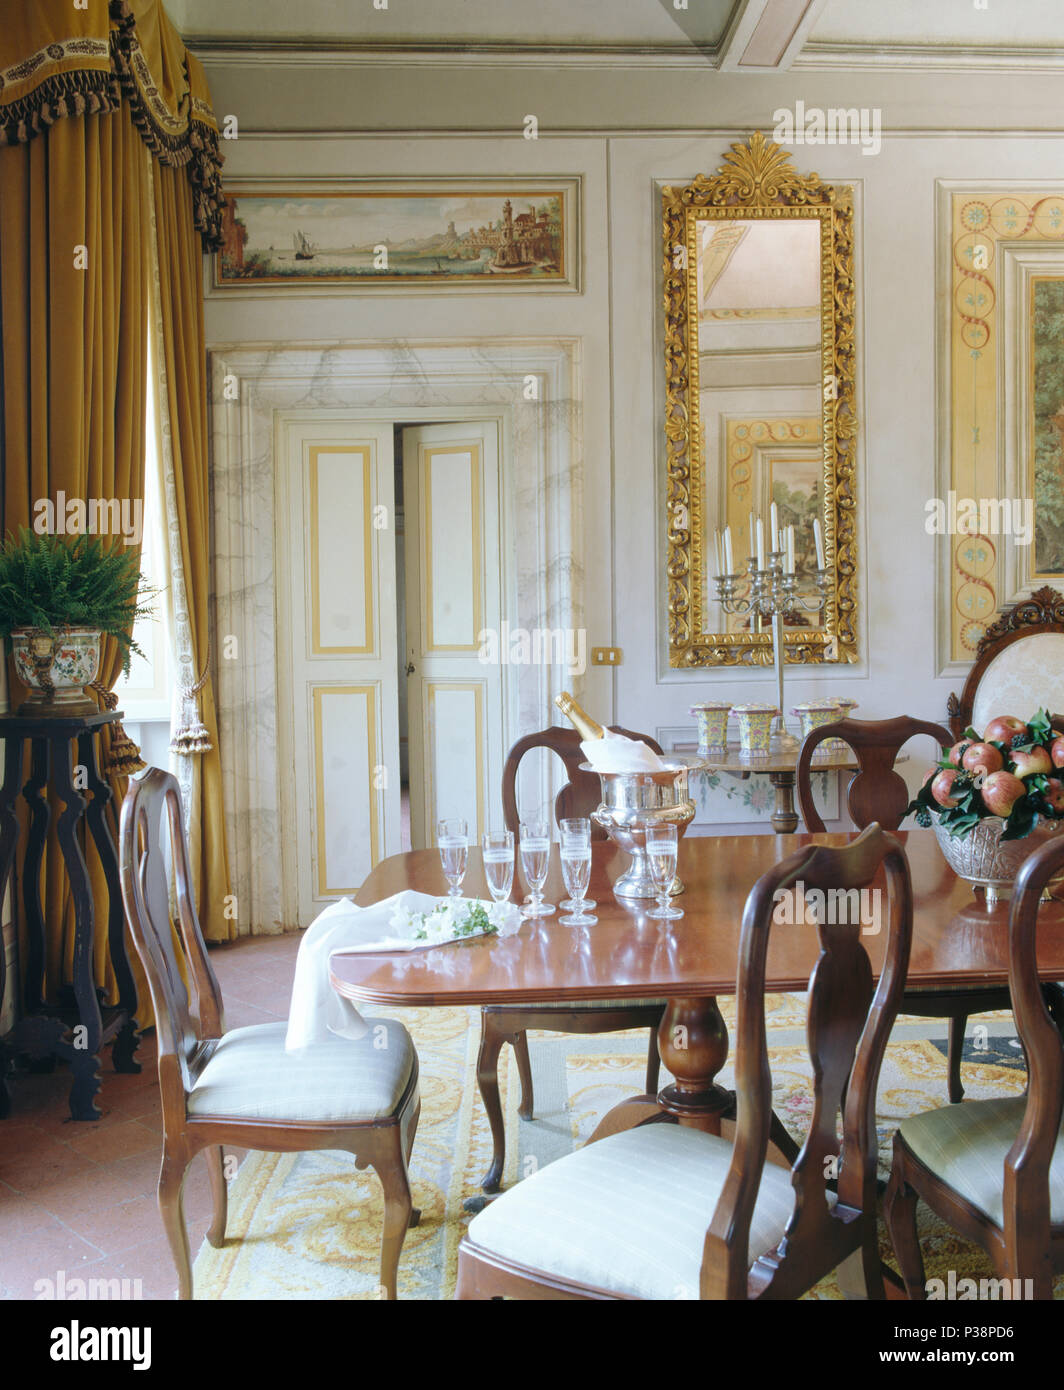 Antique Chairs At Table In Tuscan Dining Room With Gilt Antique Mirror On  Wall Beside Double Doors